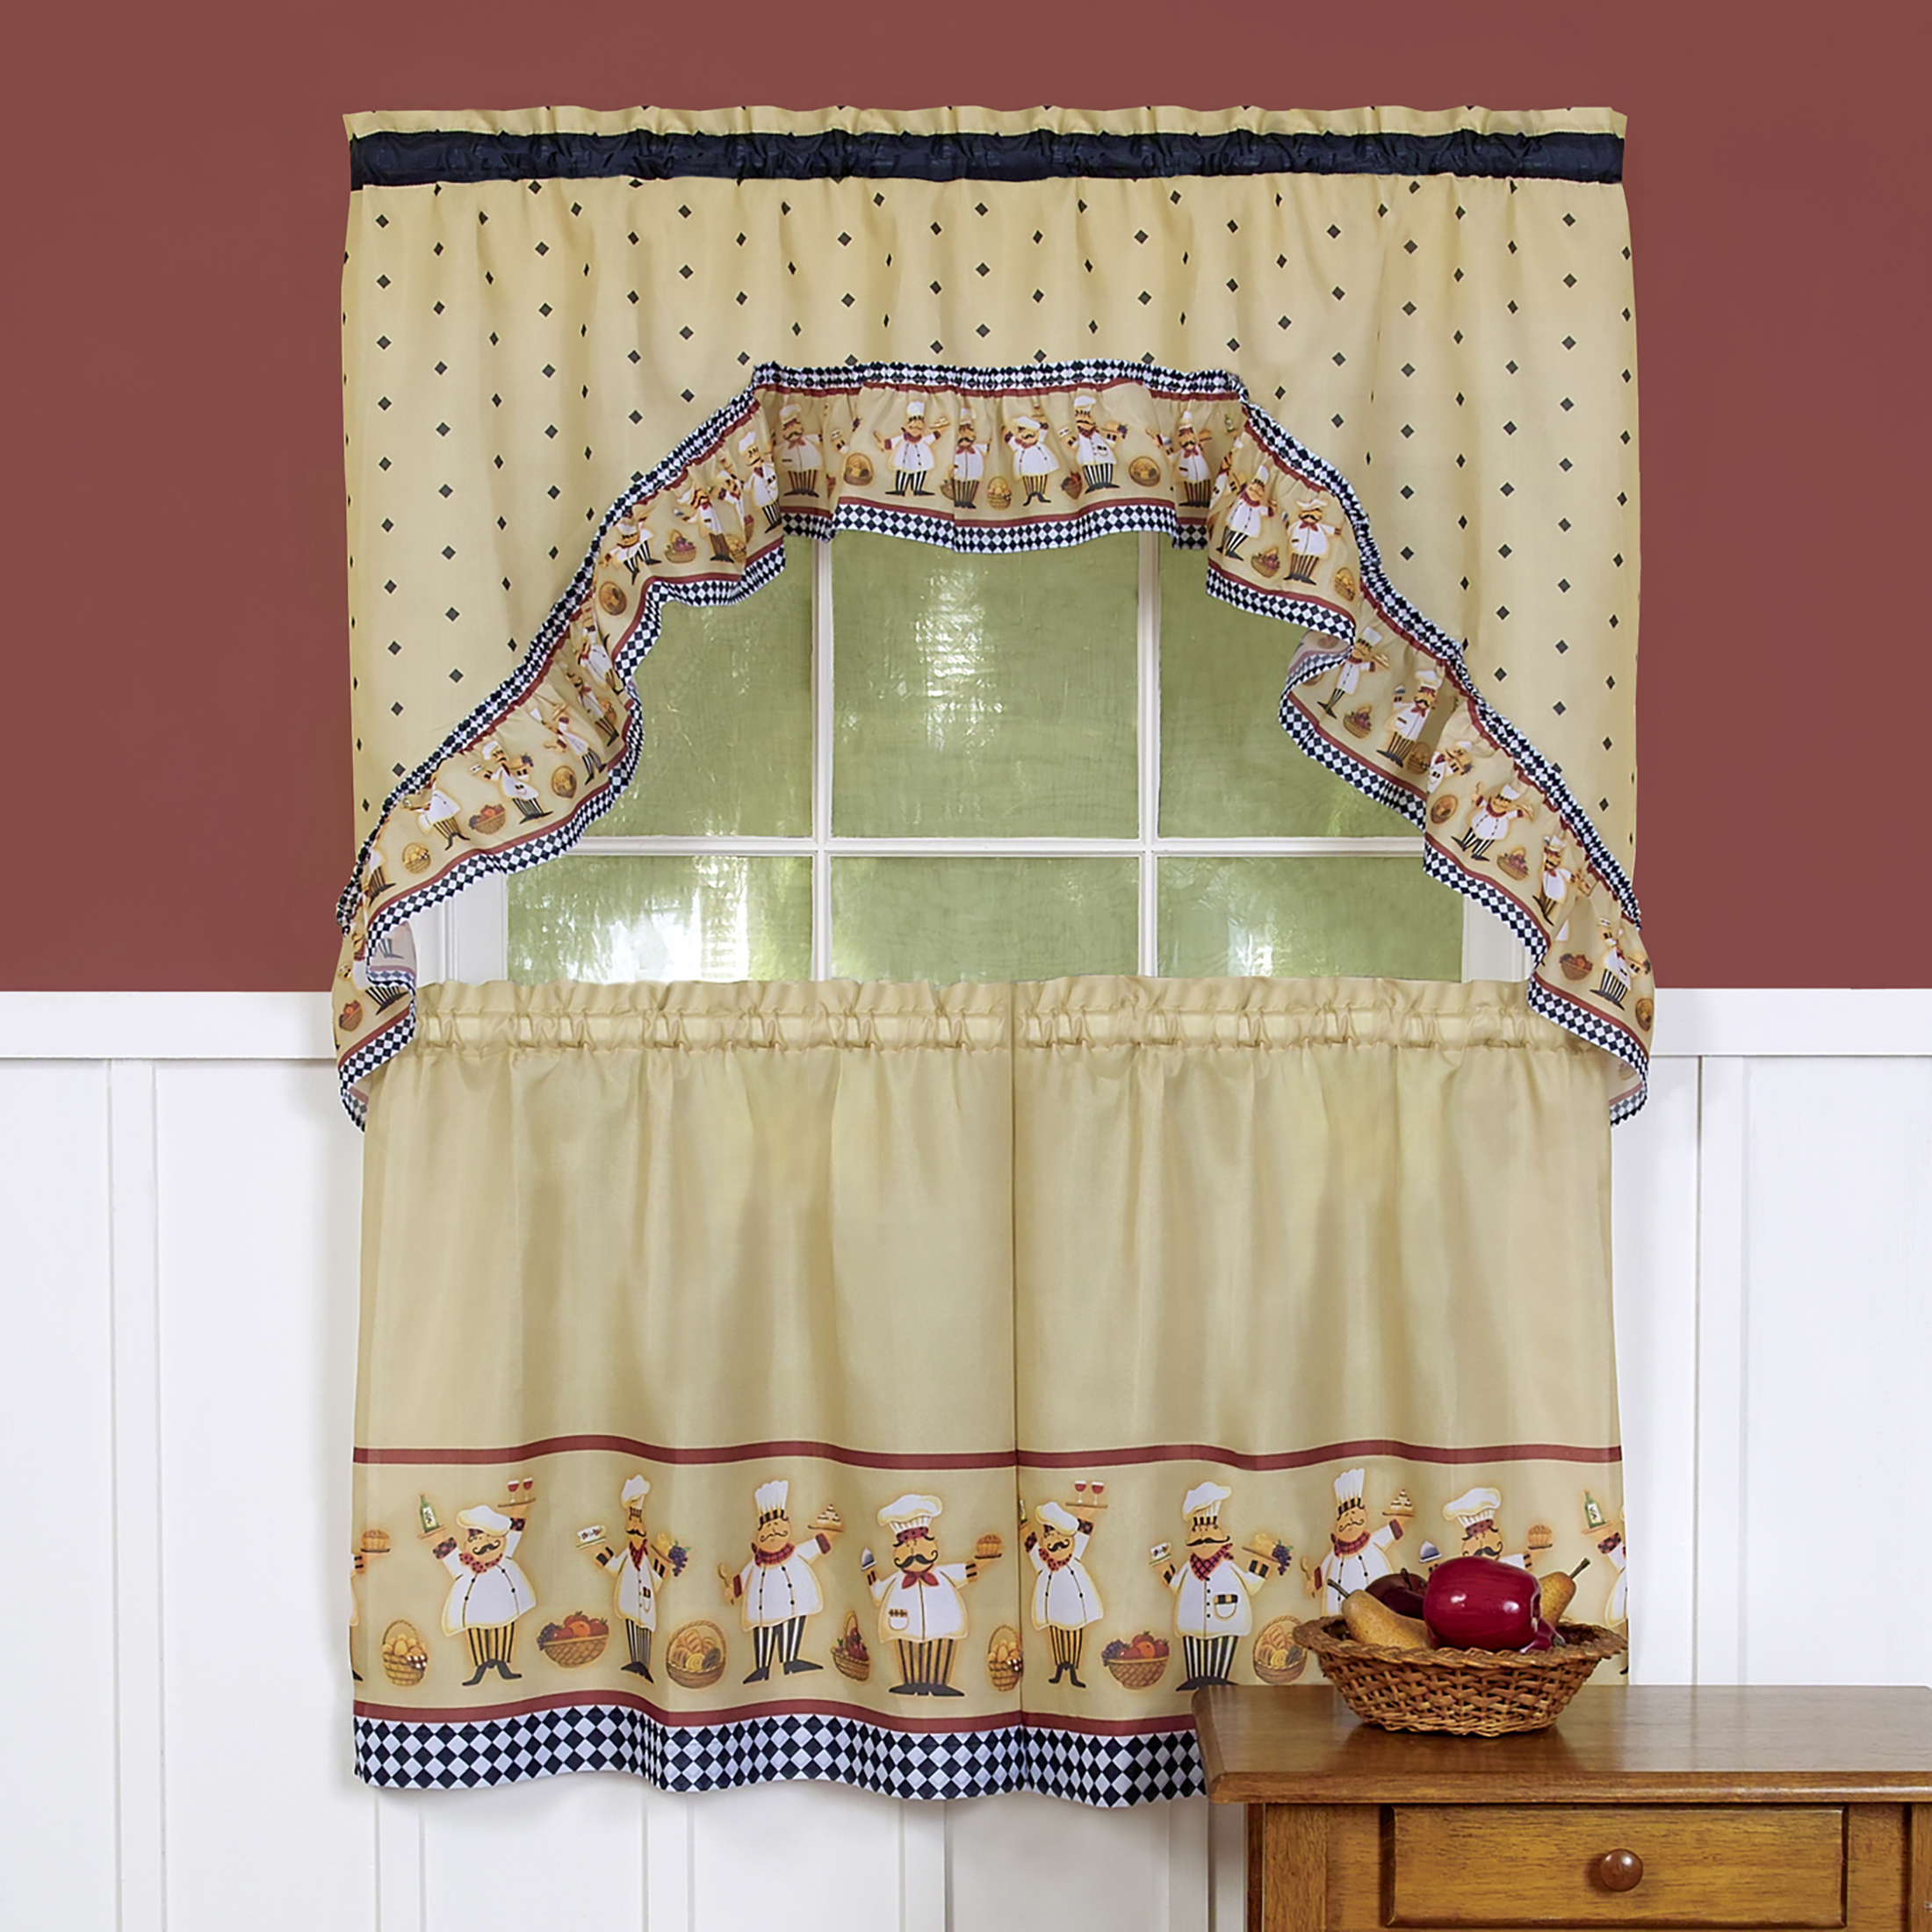 Woven Trends 3 Piece Kitchen Curtain Set Cute Chef Kitchen Decor Cafe Curtain With Swag And Tier Panel Set Perfect Window Treatment For Living Room Bedroom And Kitchen Walmart Com Walmart Com